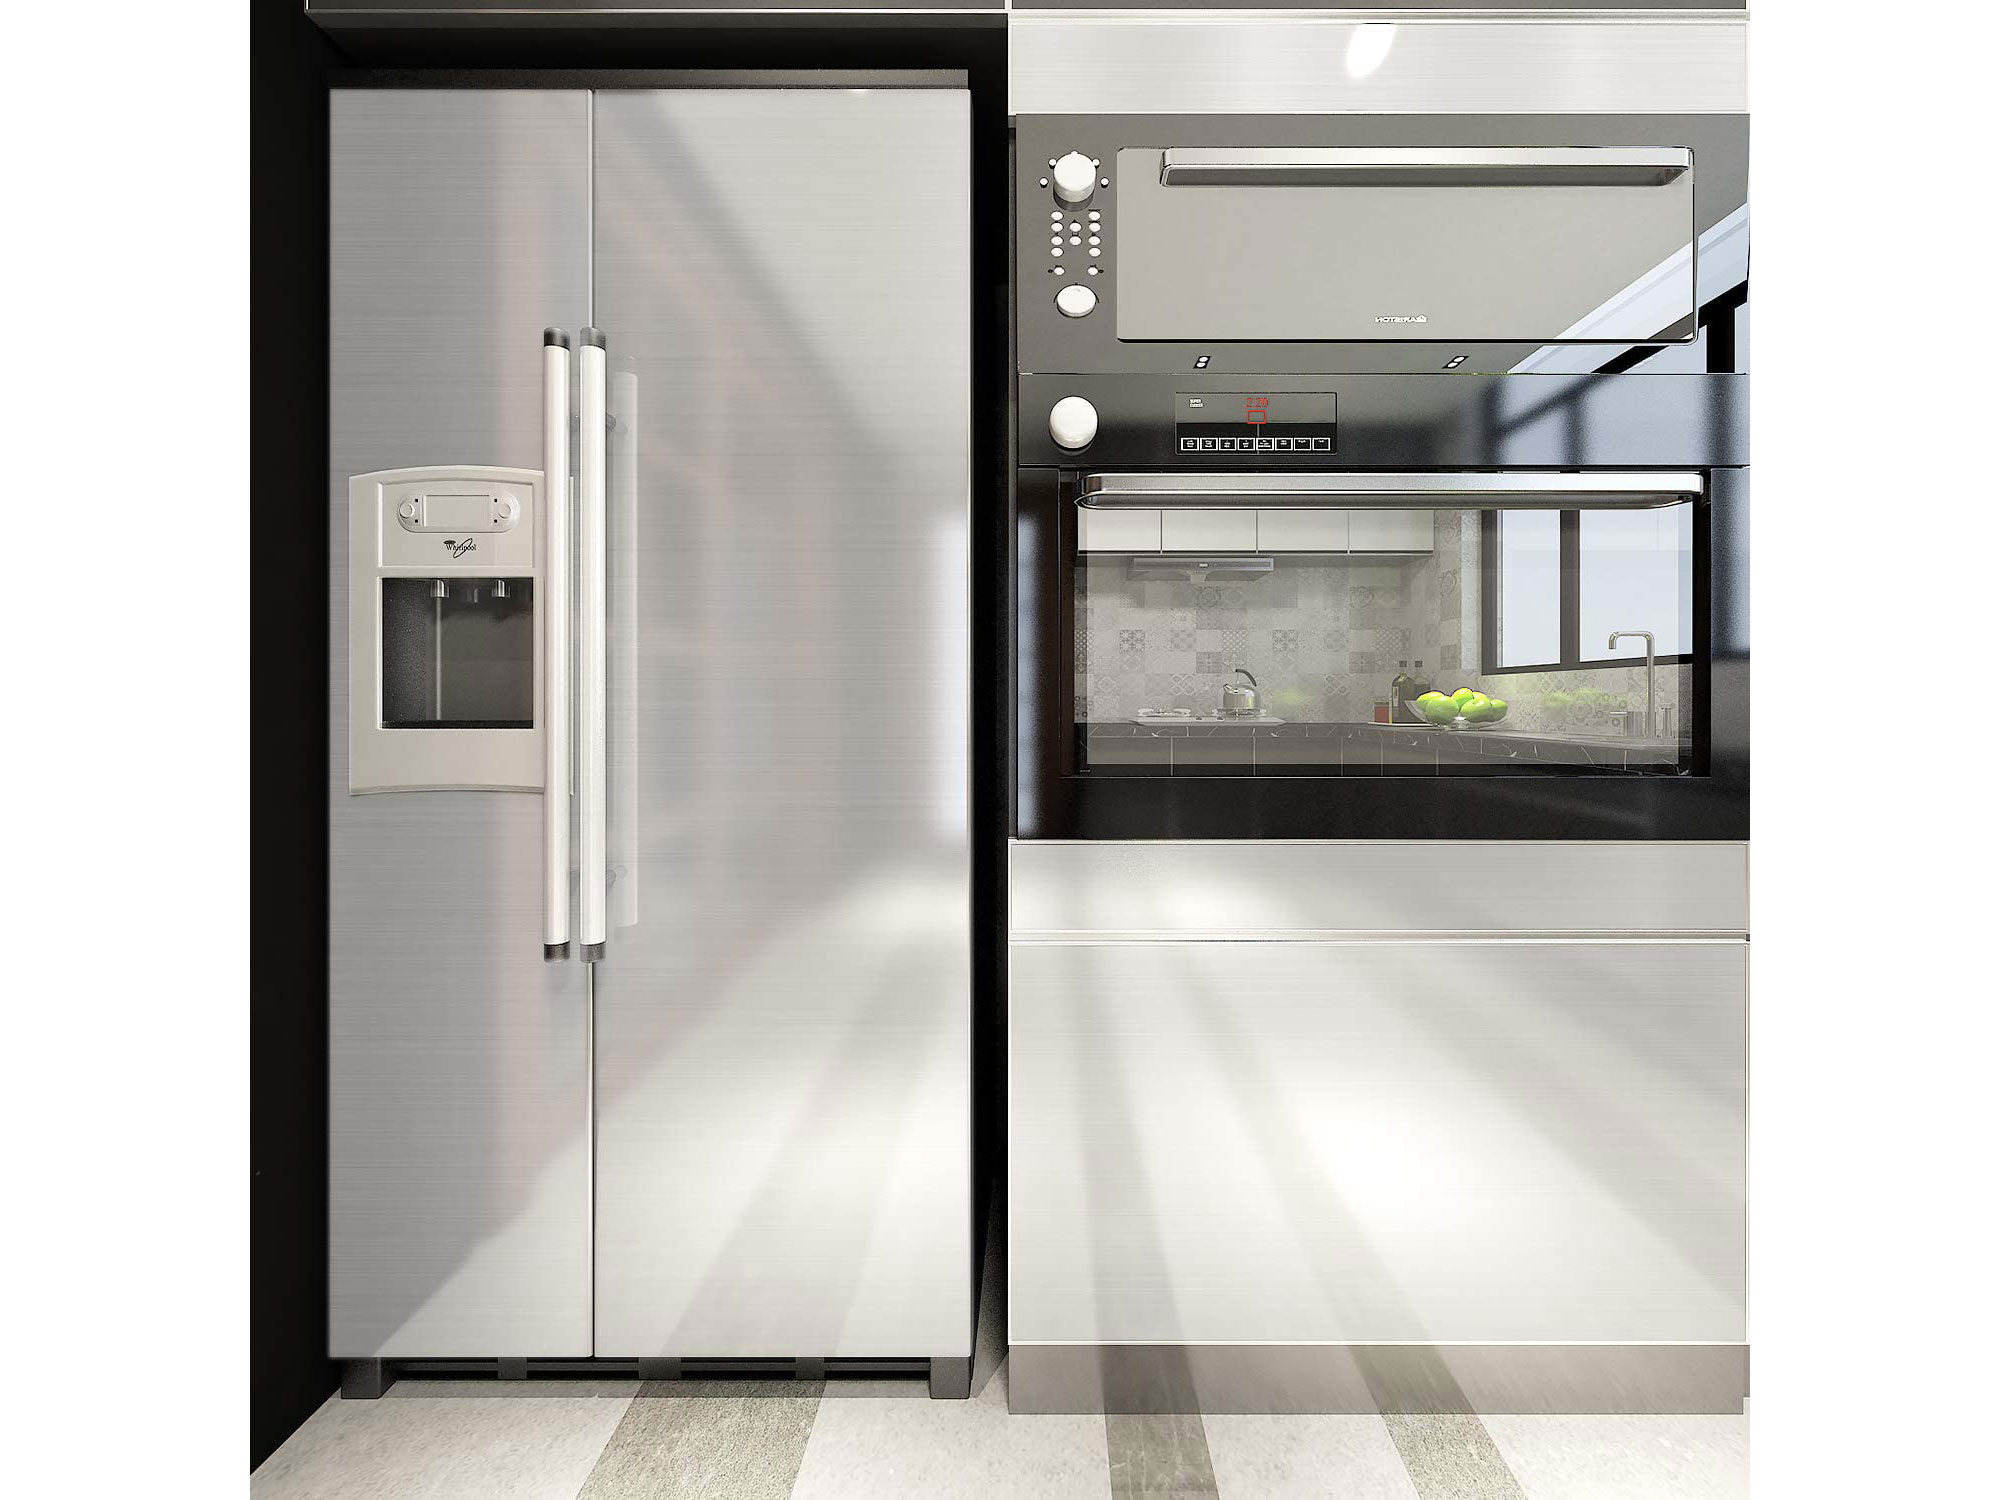 Peel-and-Stick Stainless Steel Wallpaper 2